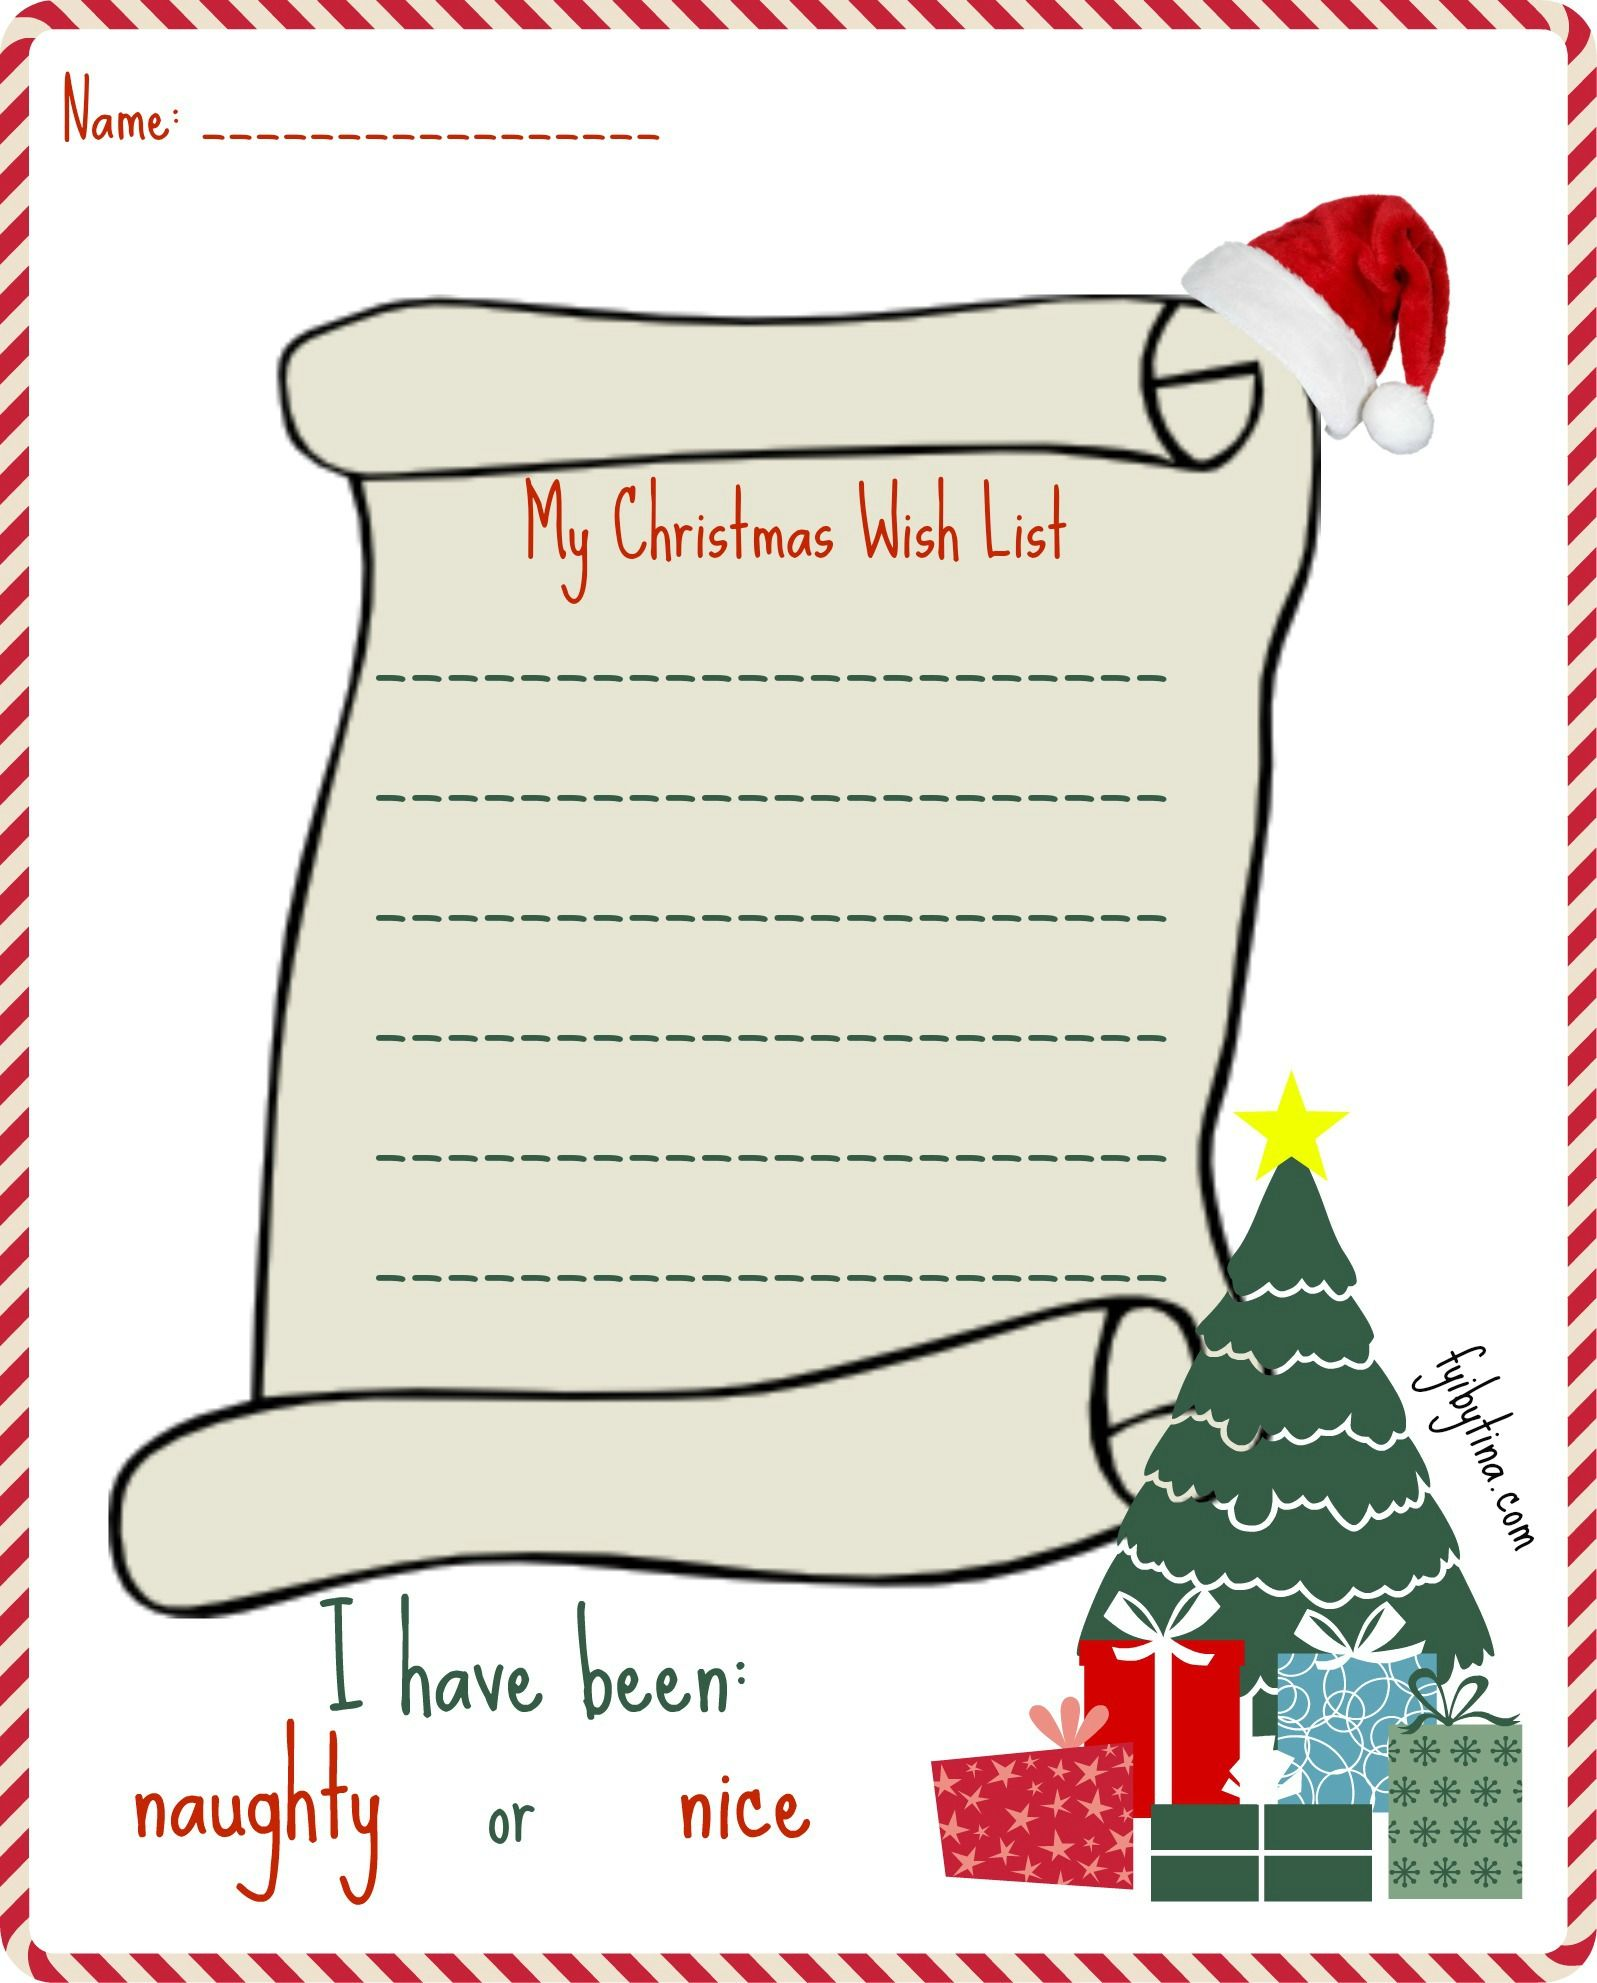 printable my christmas wish list for santa fonts printables